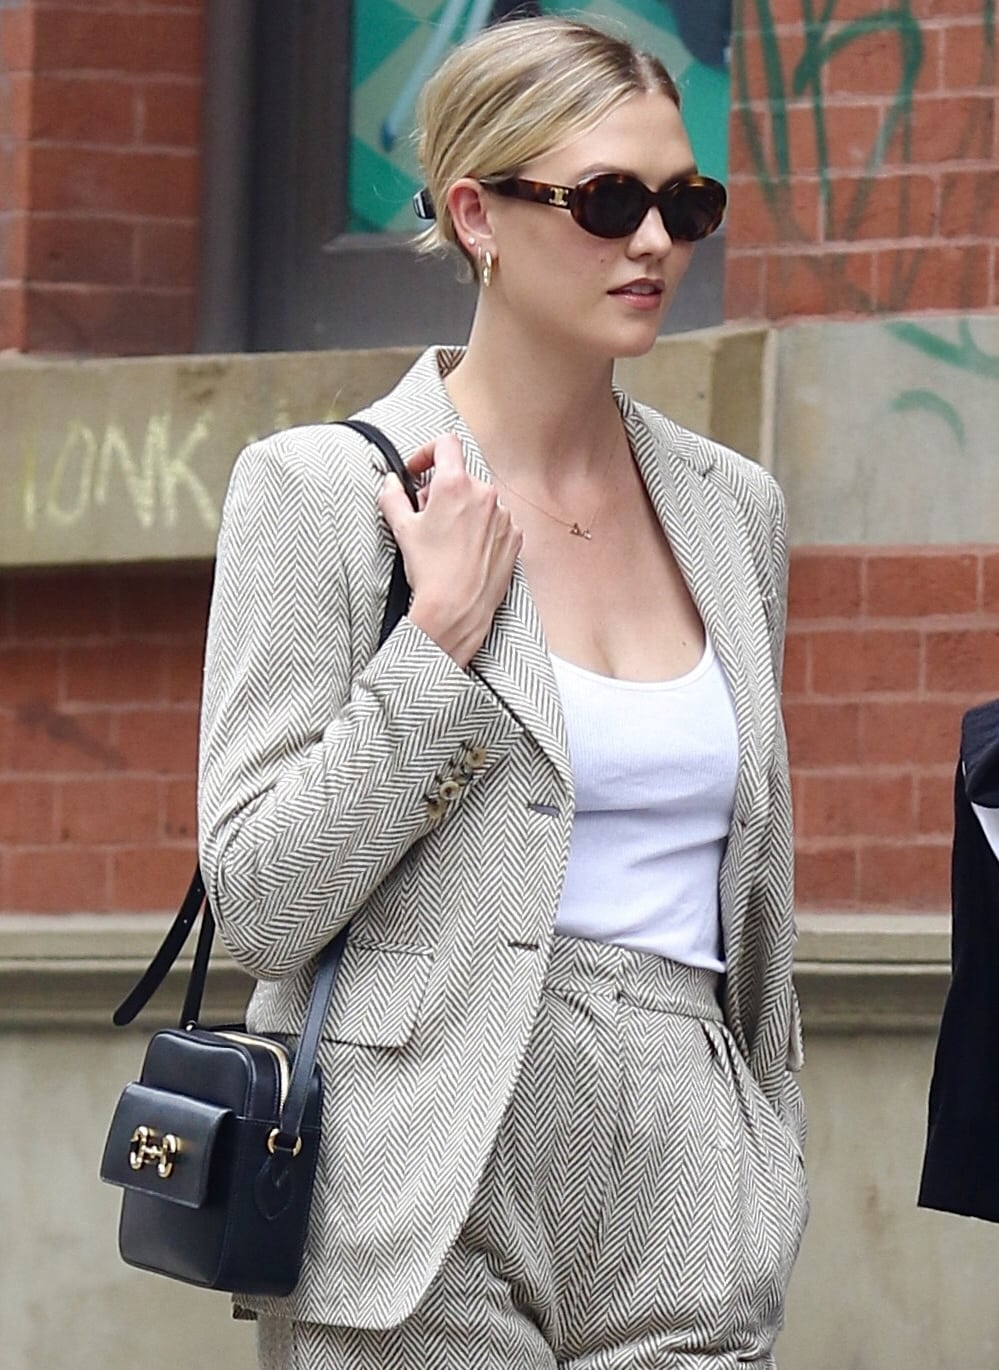 Karlie Kloss styled her Max Mara suit with a bag from Gucci's vintage-inspired '1955' collection